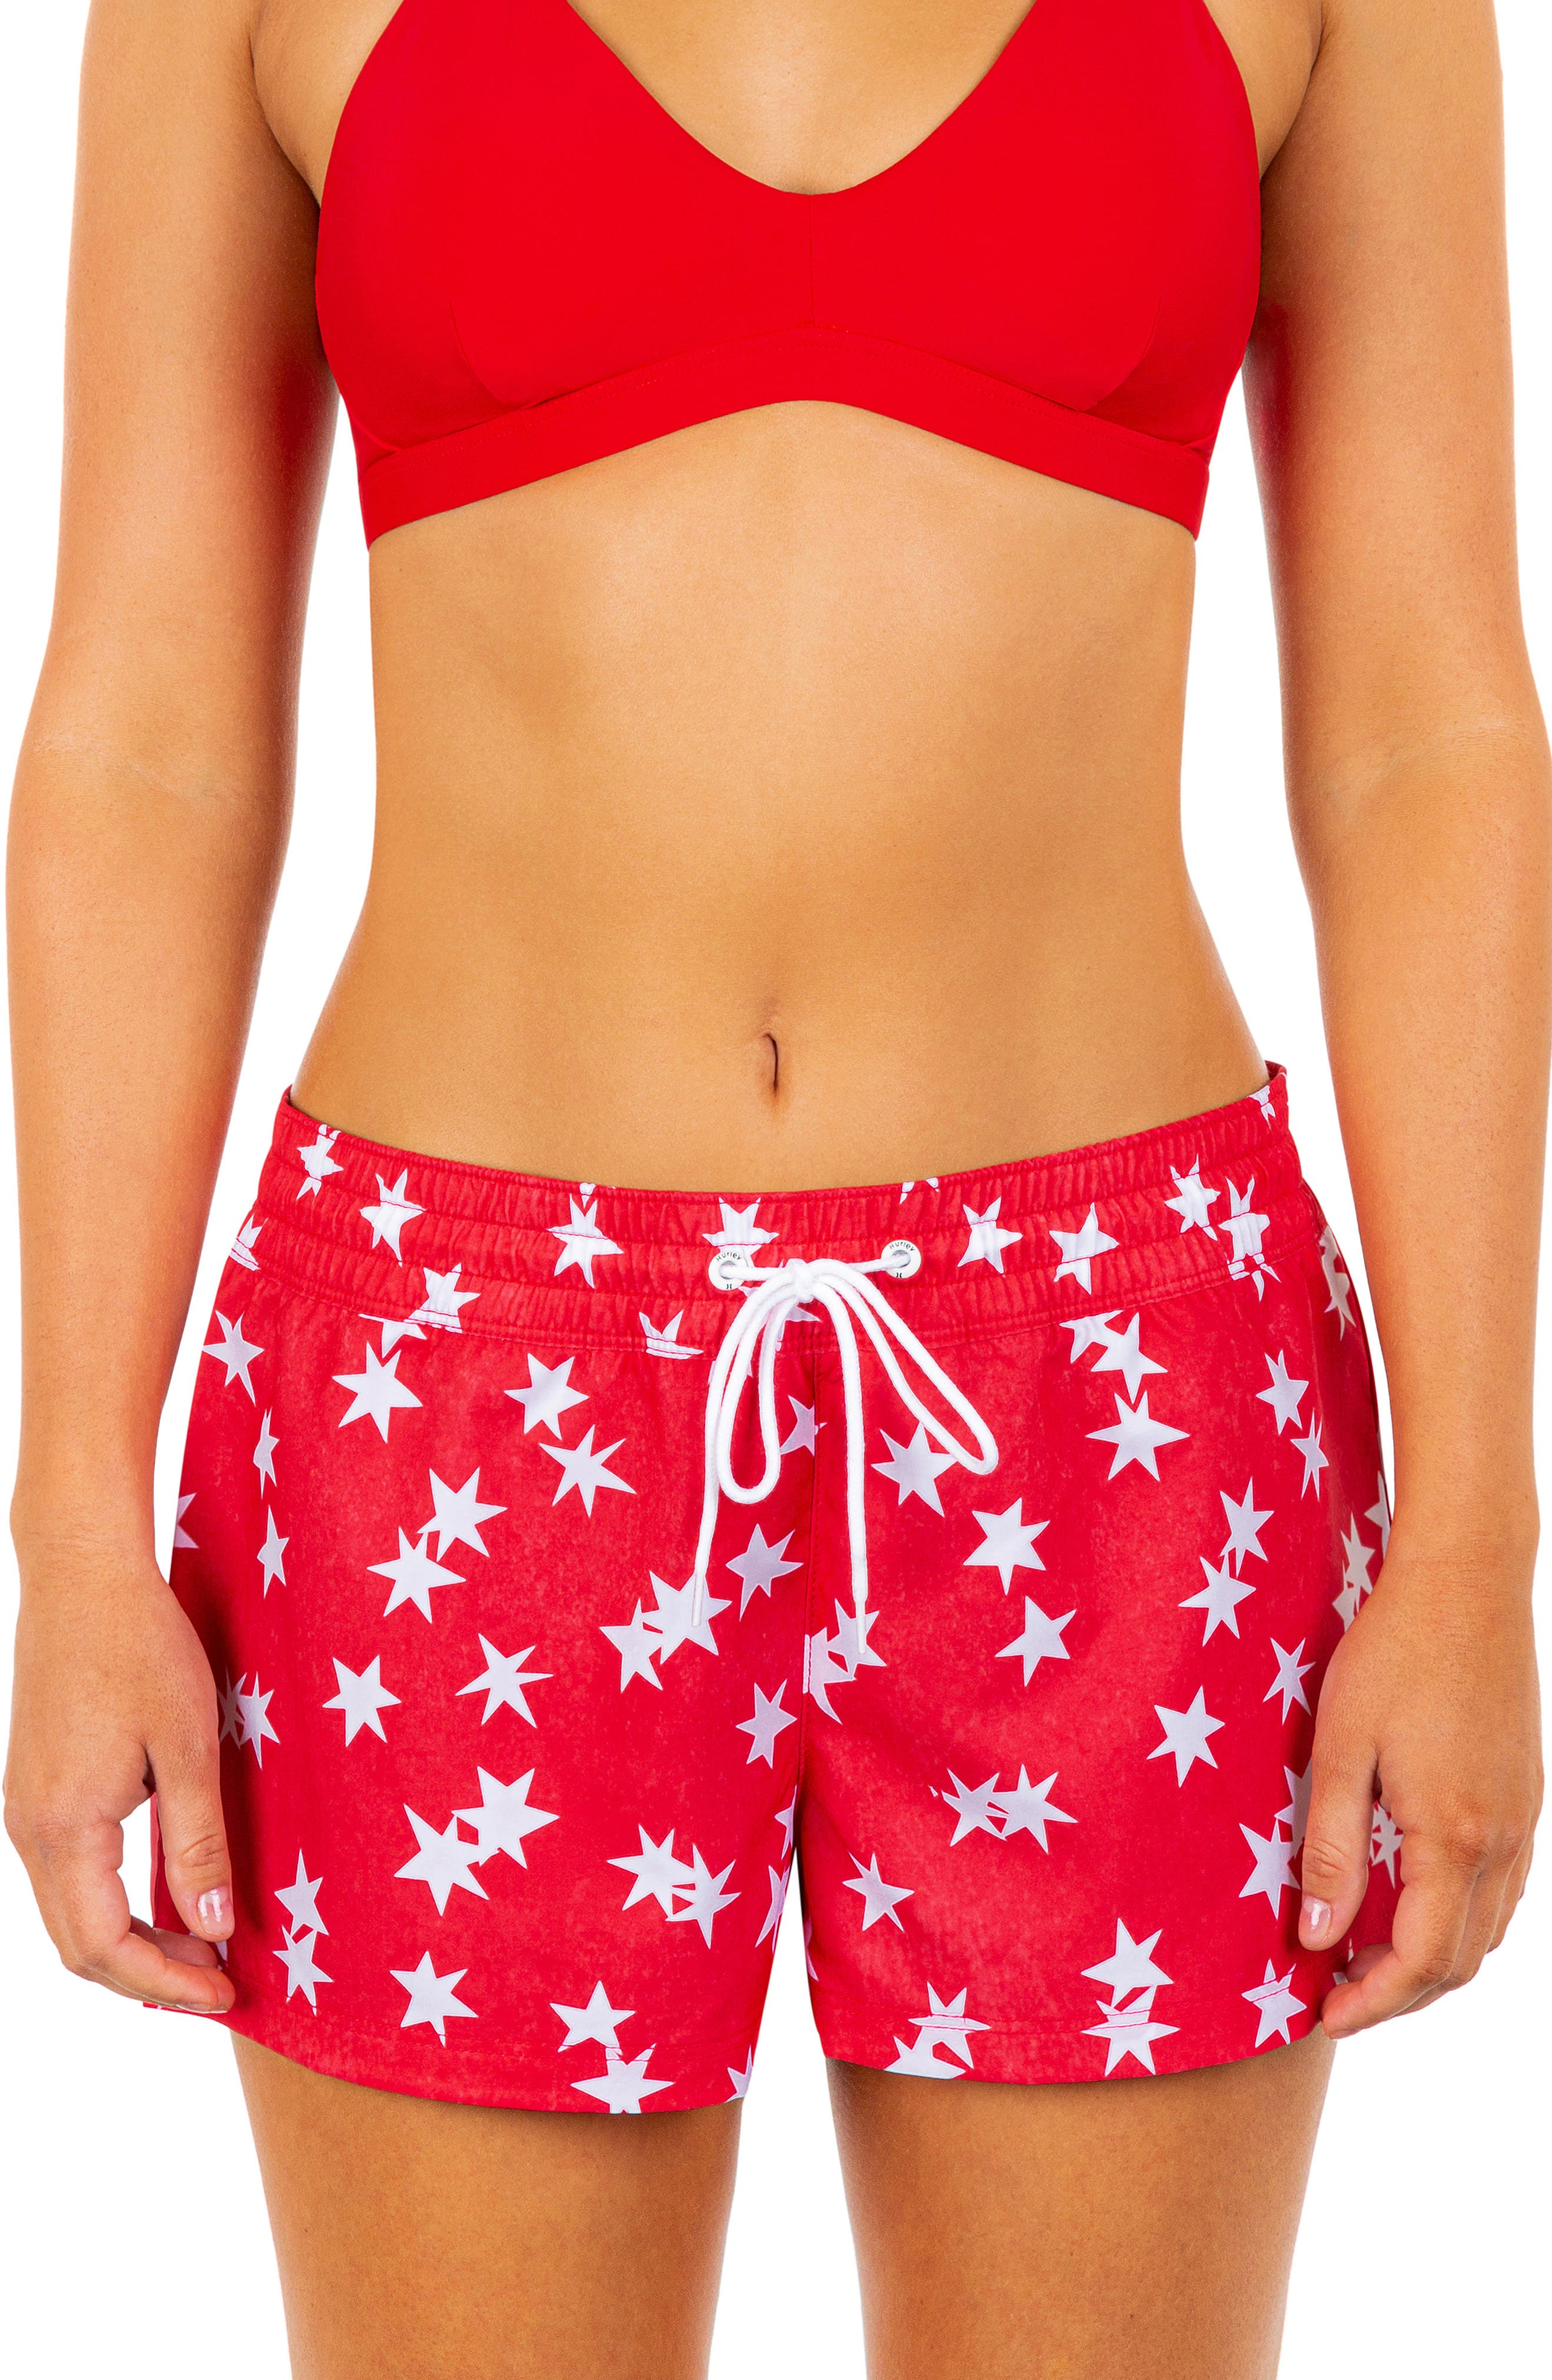 Star Spangled Supersuede 2.5 Volley Swim Shorts